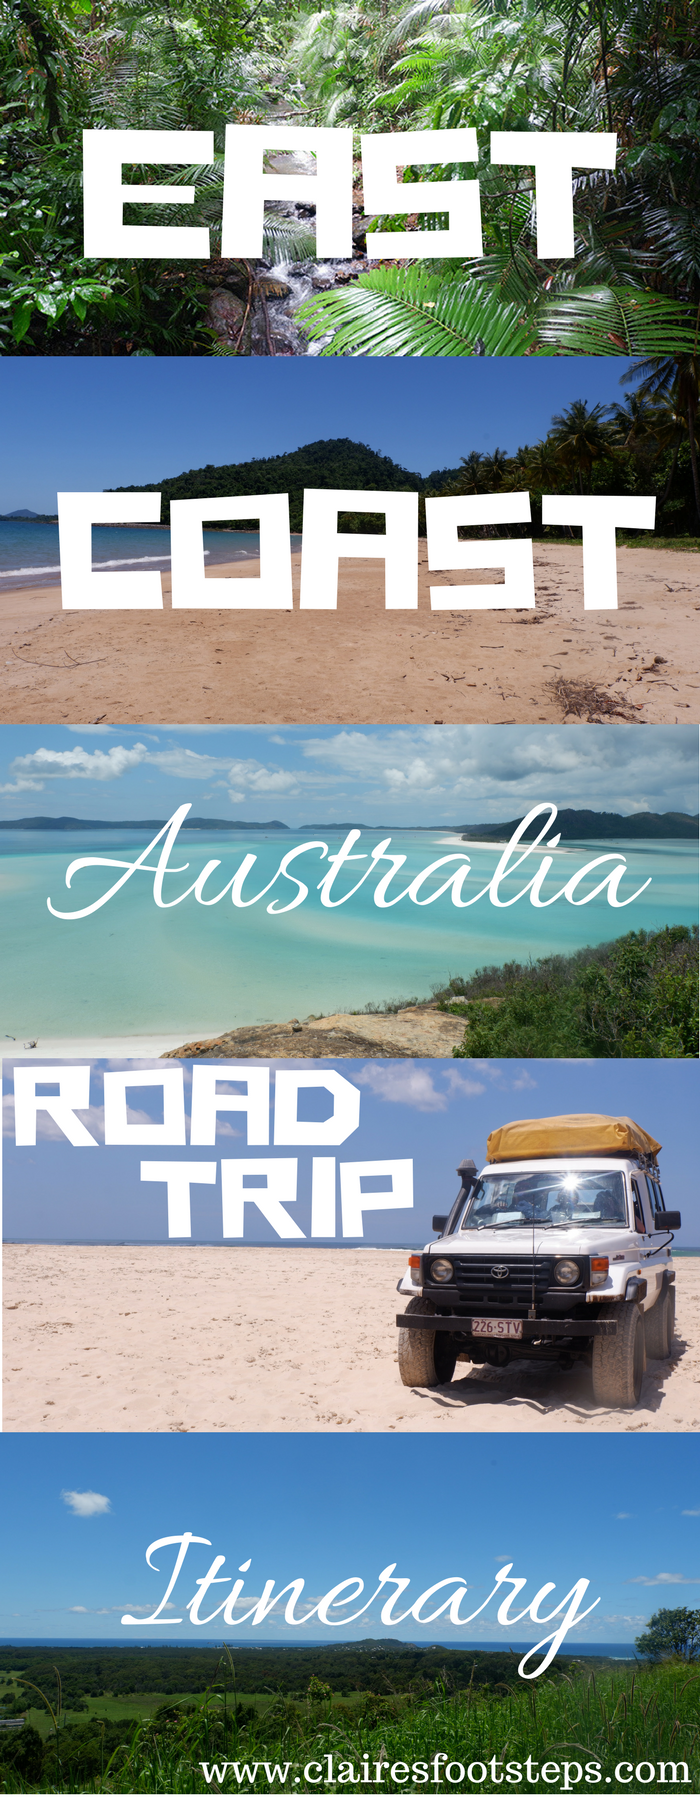 Searching for an east coast Australia road trip itinerary? This suggested route will take you through the highlights and hidden gems of the east coast of Australia, including spots in Queensland, New South Wales and Victoria. Split into three sections: Cairns to Brisbane drive, Brisbane to Sydney drive and Sydney to Melbourne drive, and with Australia hostel recommendations and plenty of travel tips for Australia, this is the only Cairns to Melbourne drive itinerary you'll need. Click through to read more!